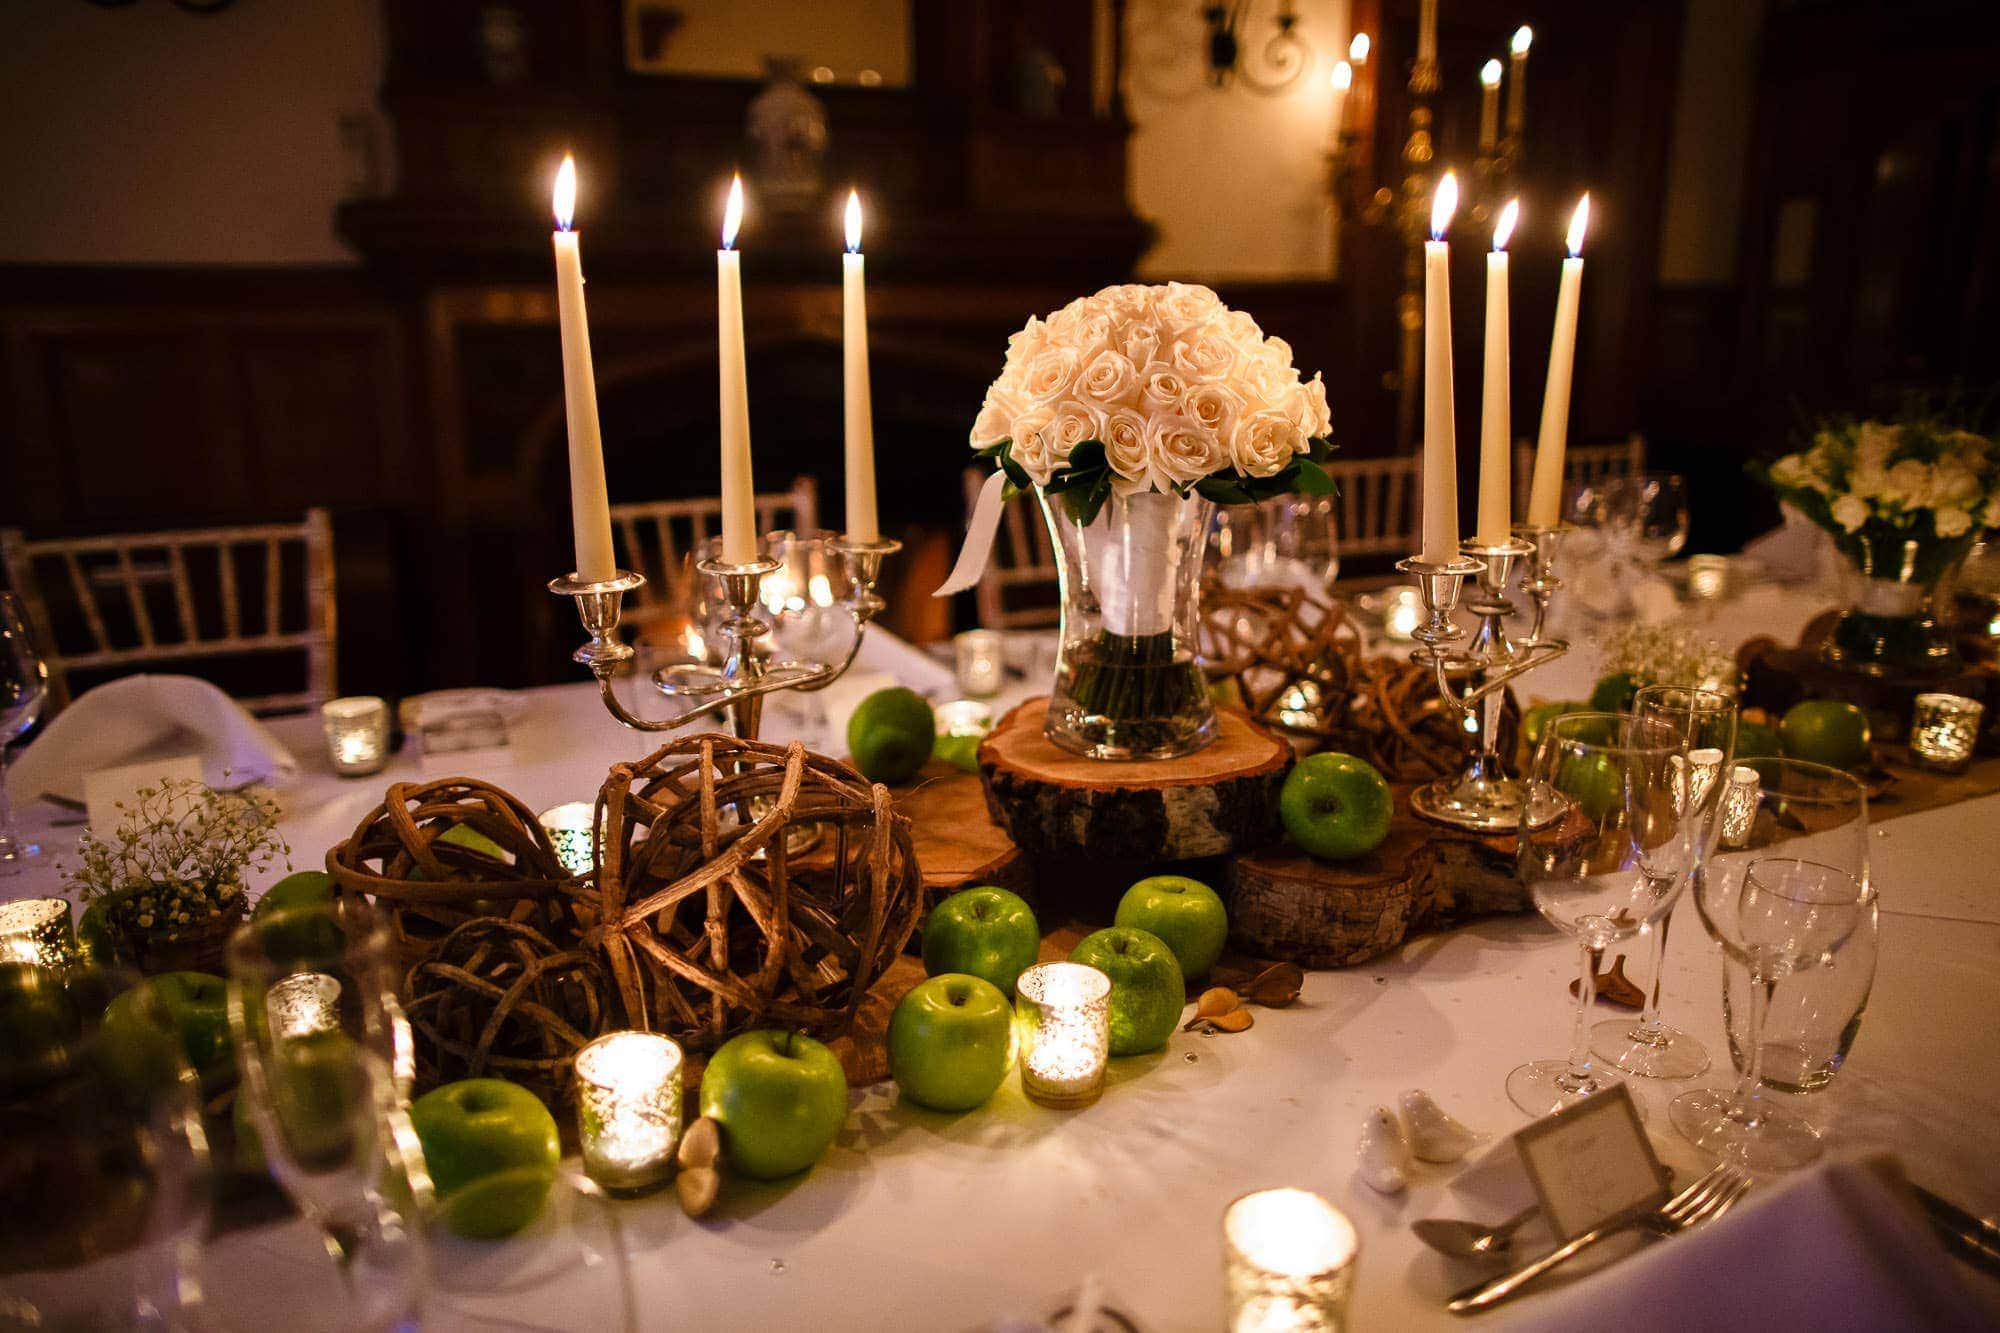 Candlelit Wedding Breakfast at Oakley Court Hotel, Berkshire with green apple decorations